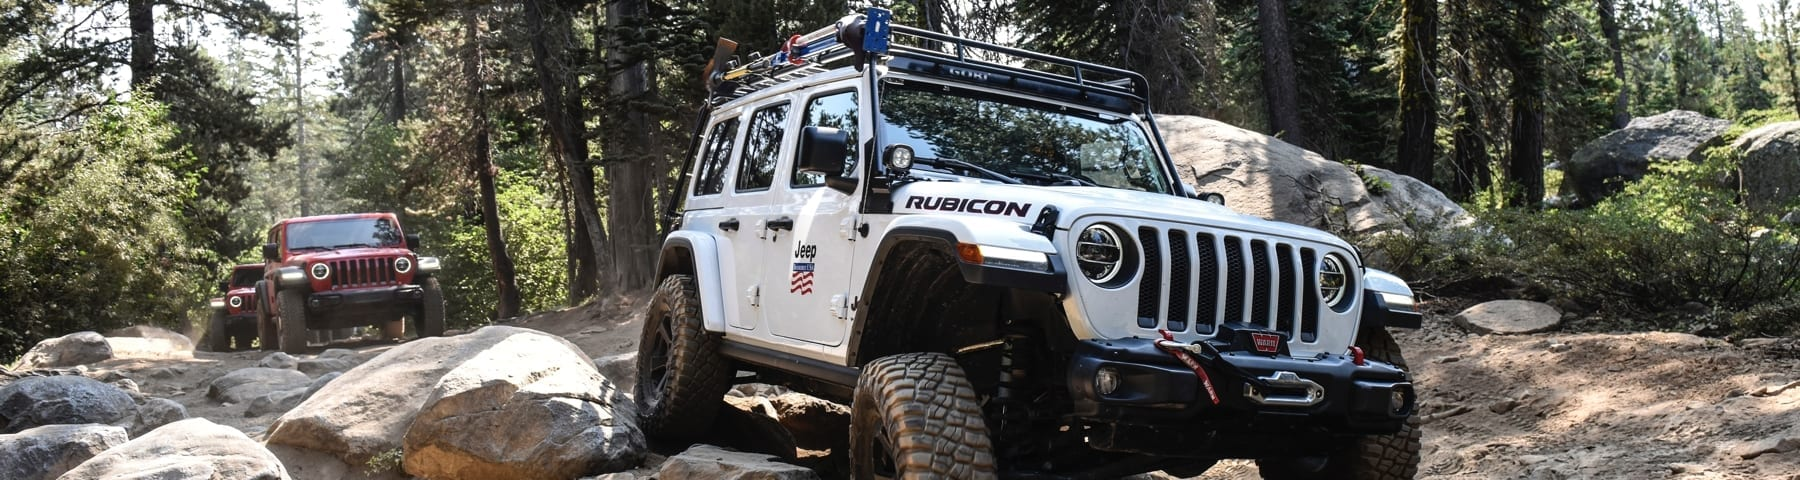 Jeep Trails 22nd Rubicon Trail 2019 Jeep Jamboree Usa